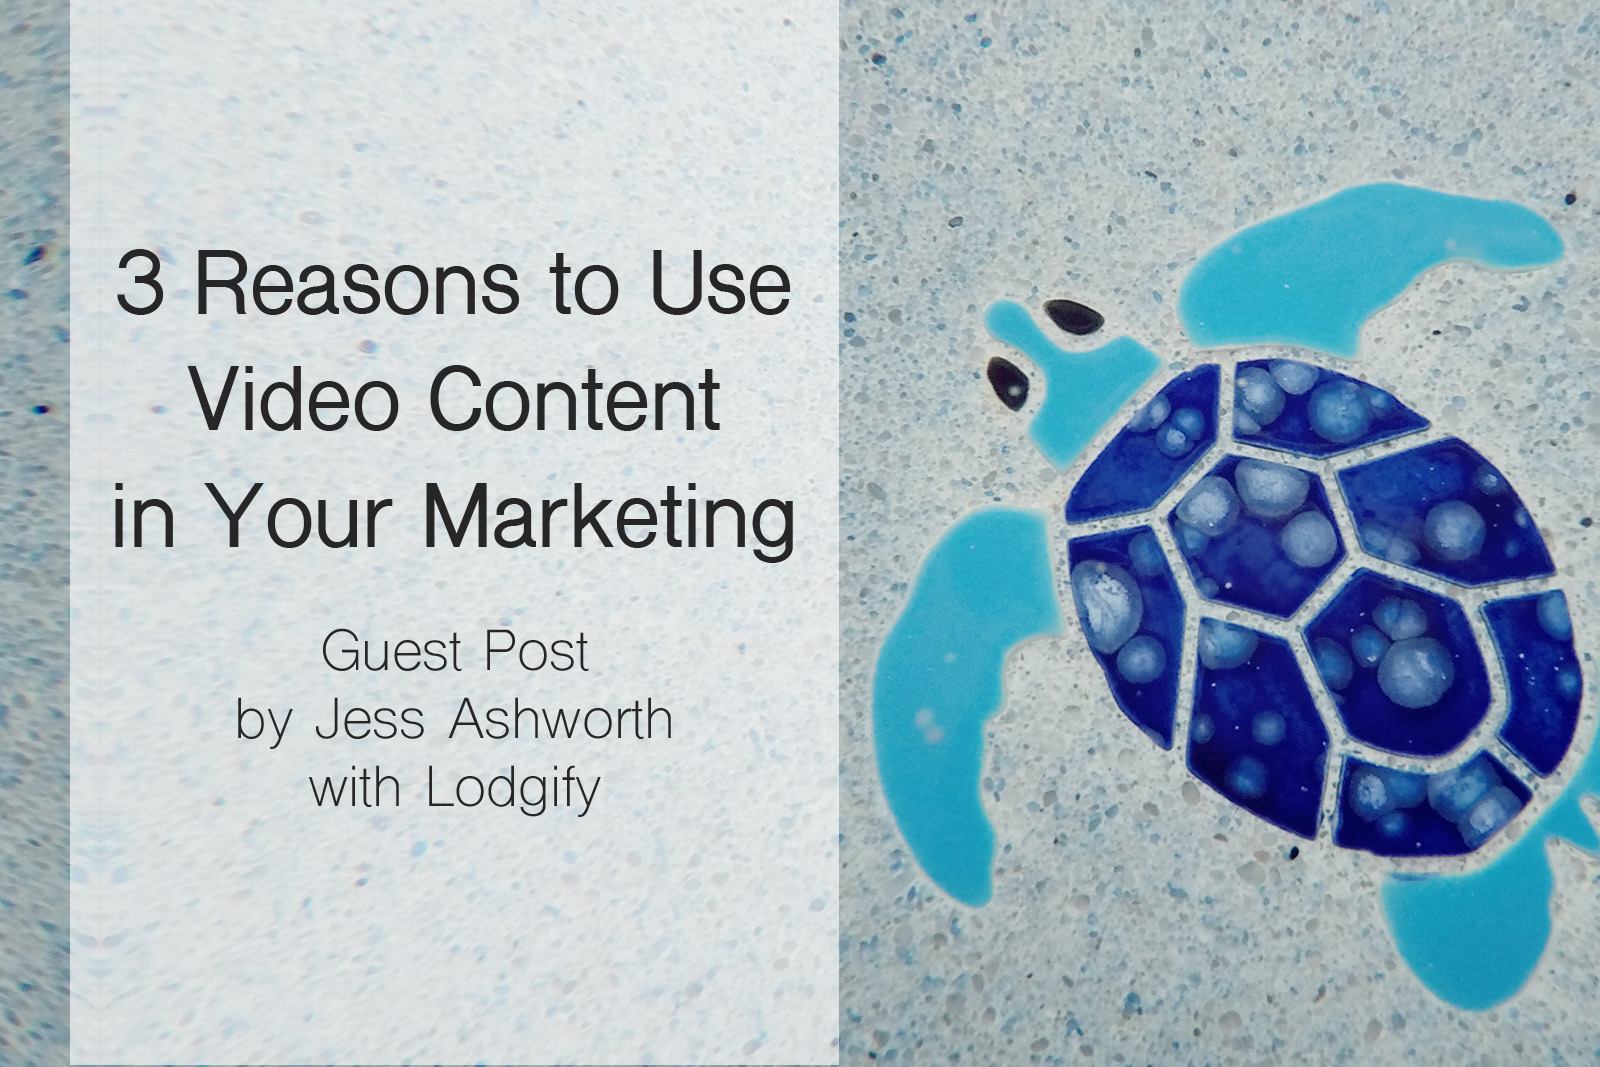 3 Reasons for Video Content Marketing for Your Vacation Rental Property